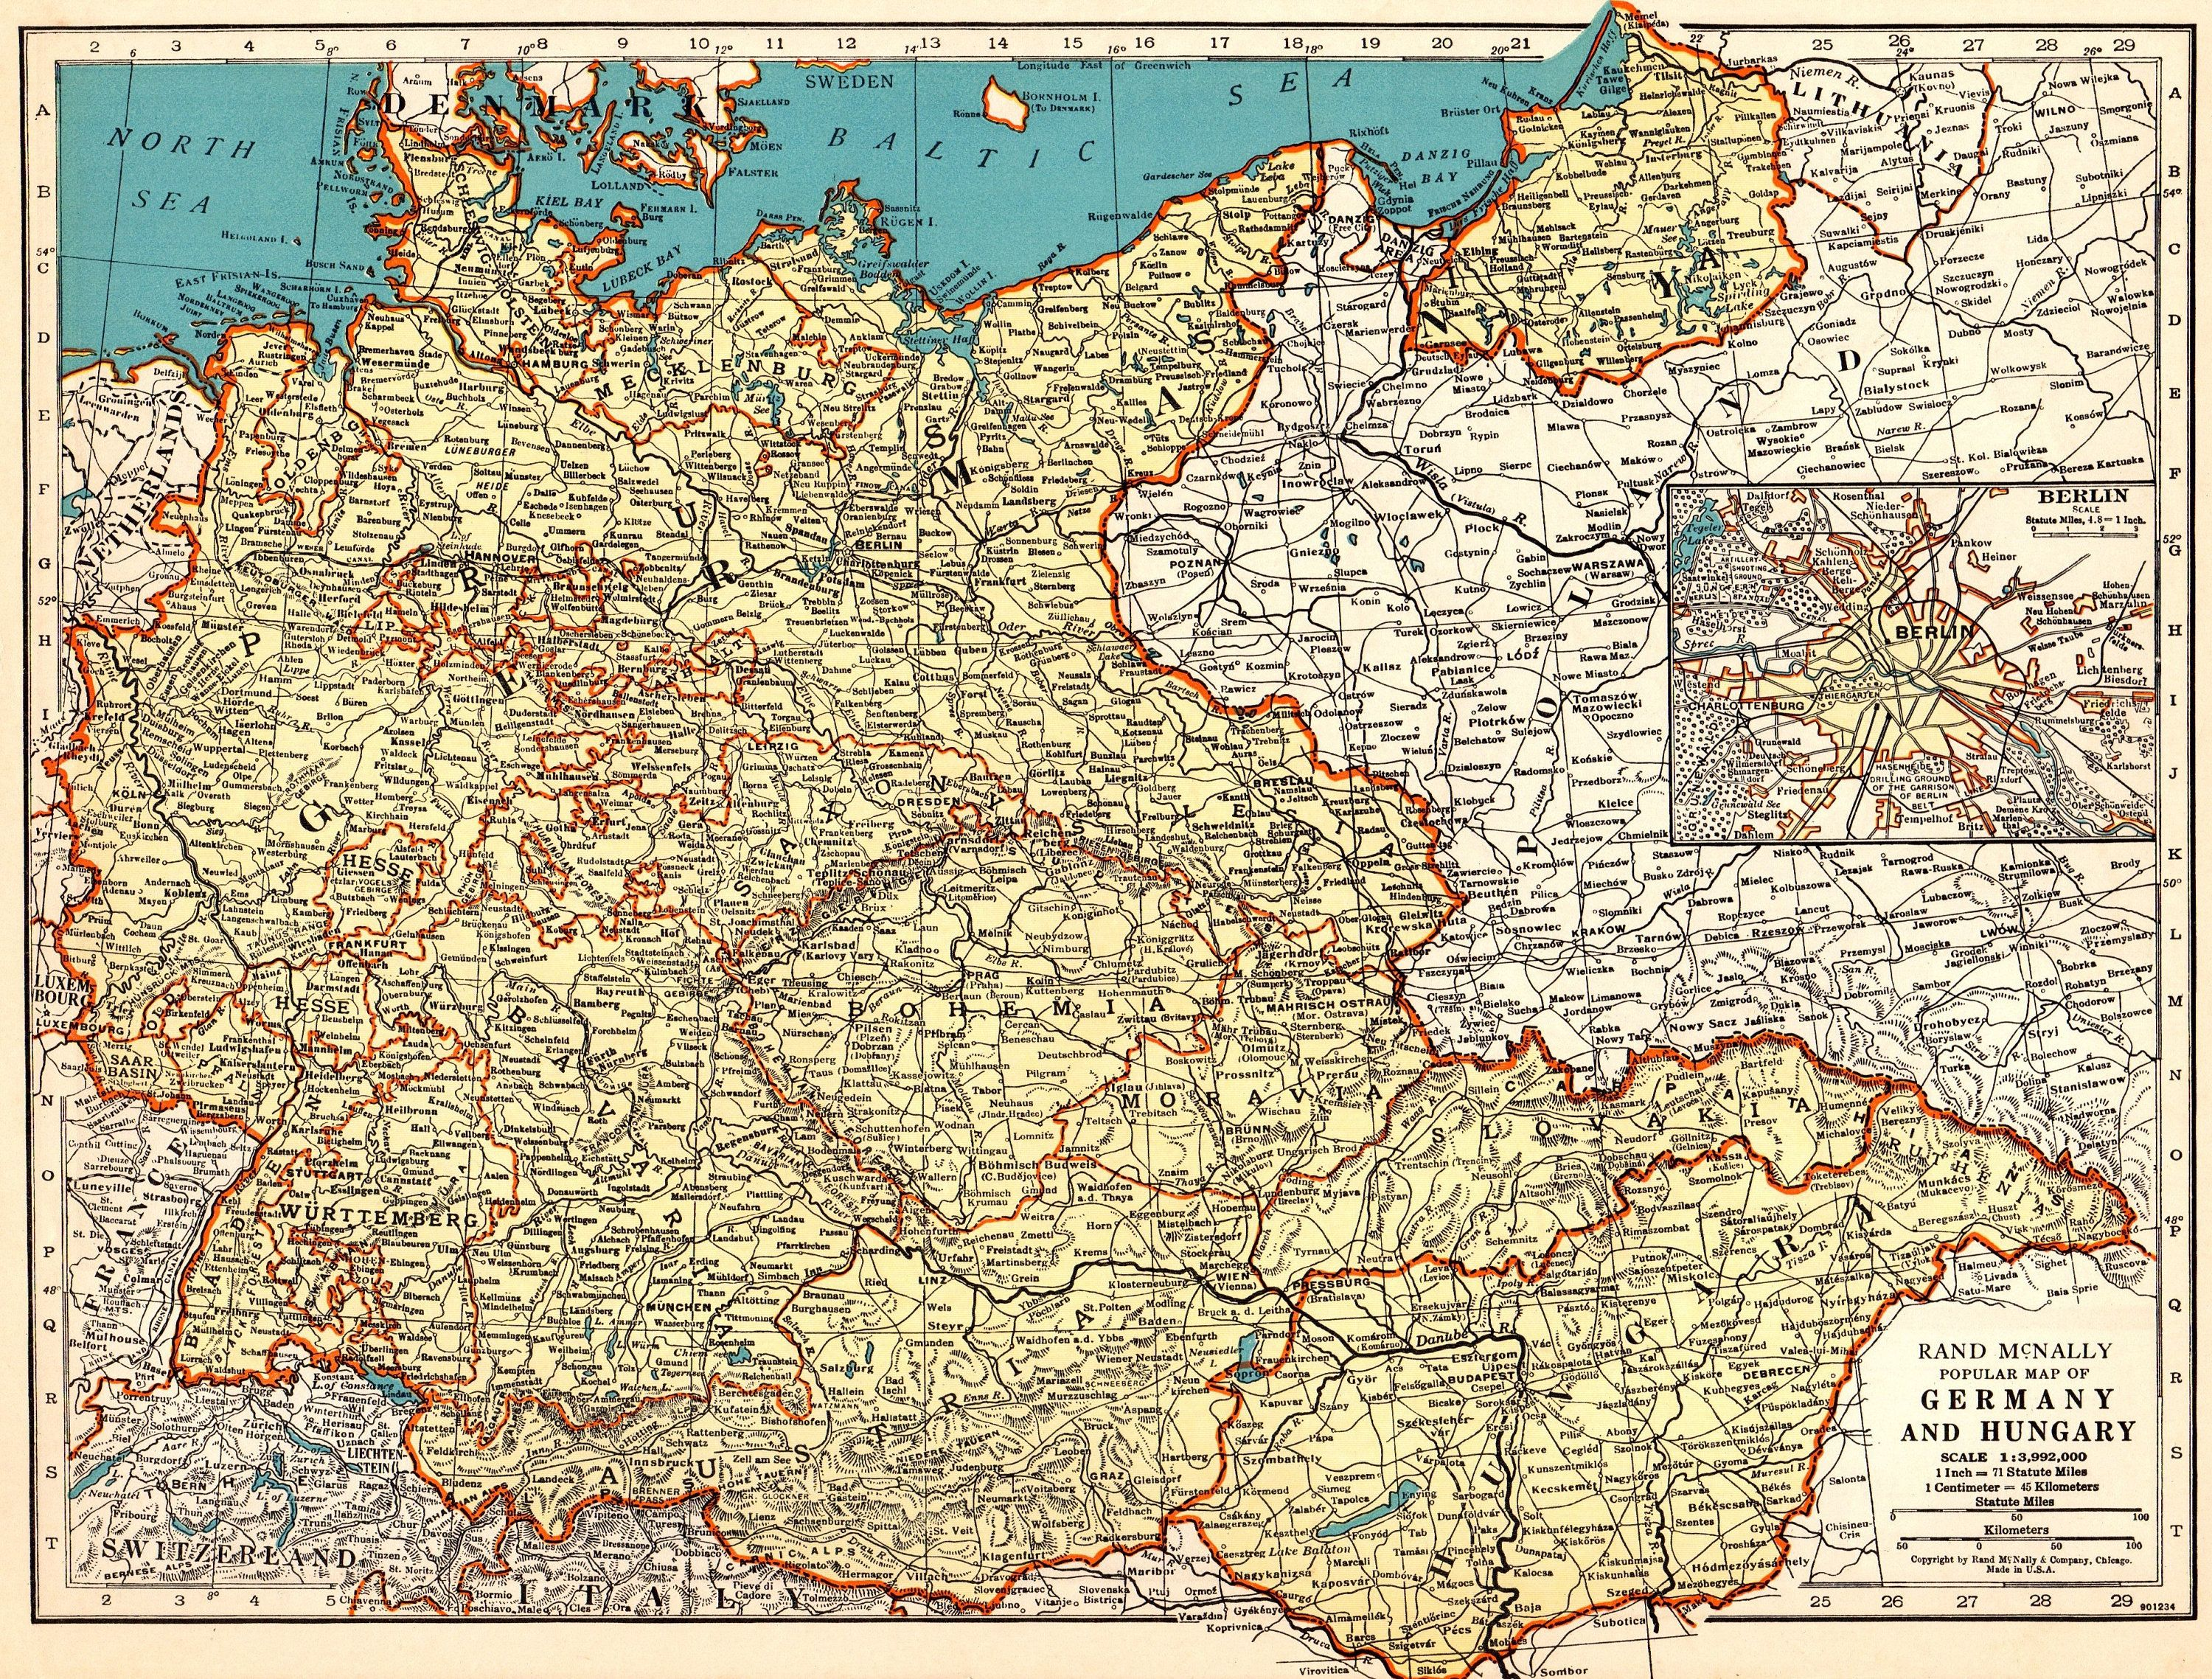 Map Of Germany 1939.1939 Antique Germany Map Of Germany And Hungary Map Gallery Wall